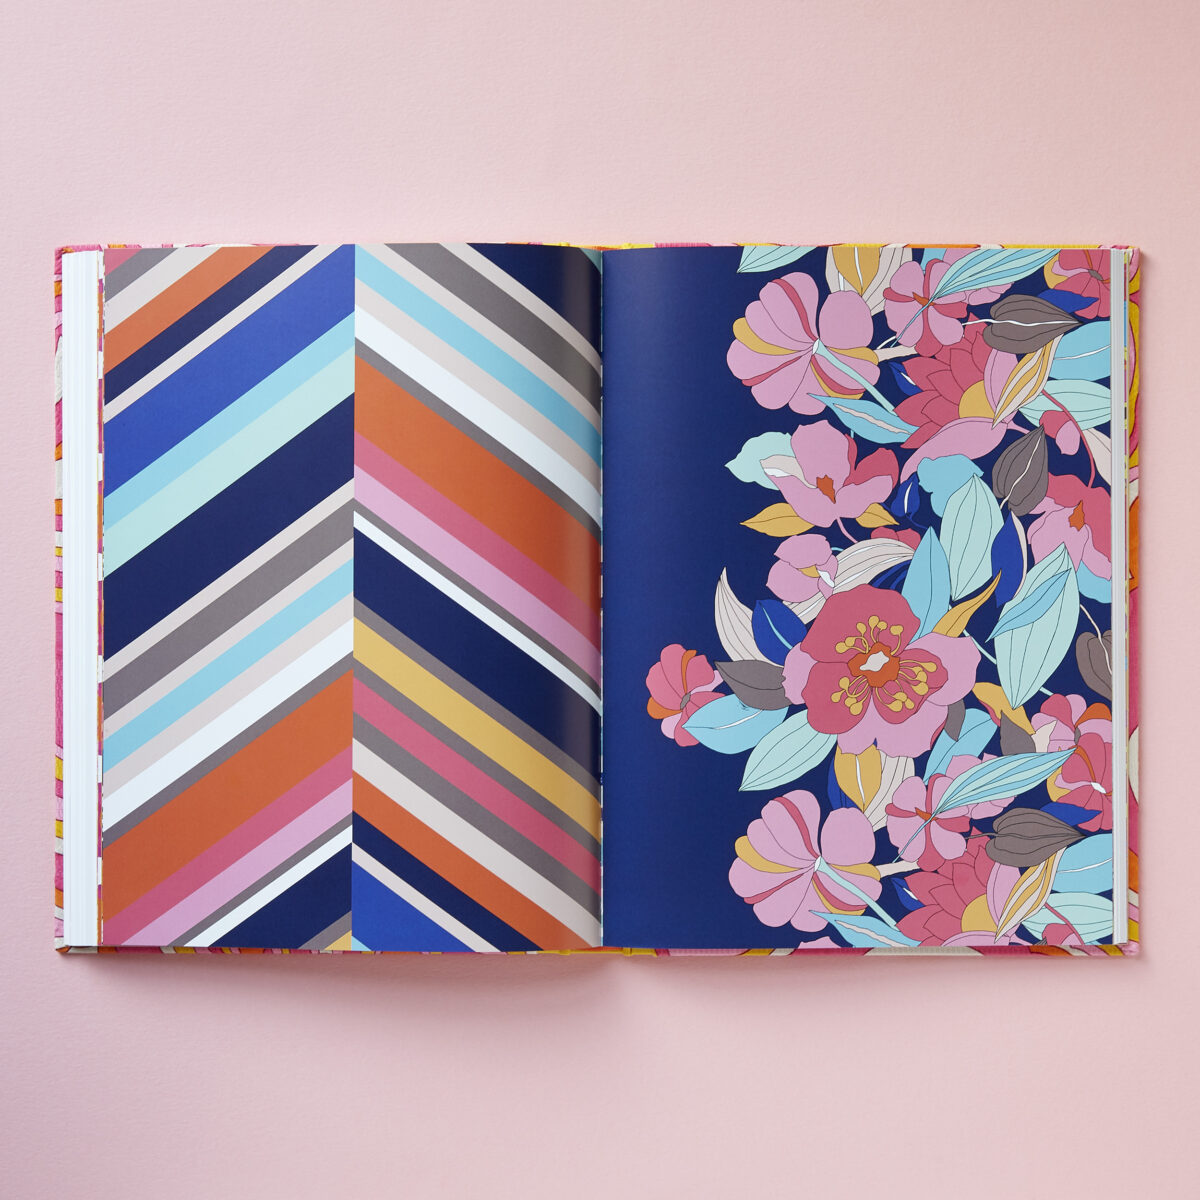 Trina Turk's joyful designs evoke a world of sunshine and whimsy. In this interview on the Aesthetics of Joy, she gives us a peek into her colorful, creative life. Image from Trina Turk, published by Chronicle Chroma 2020.